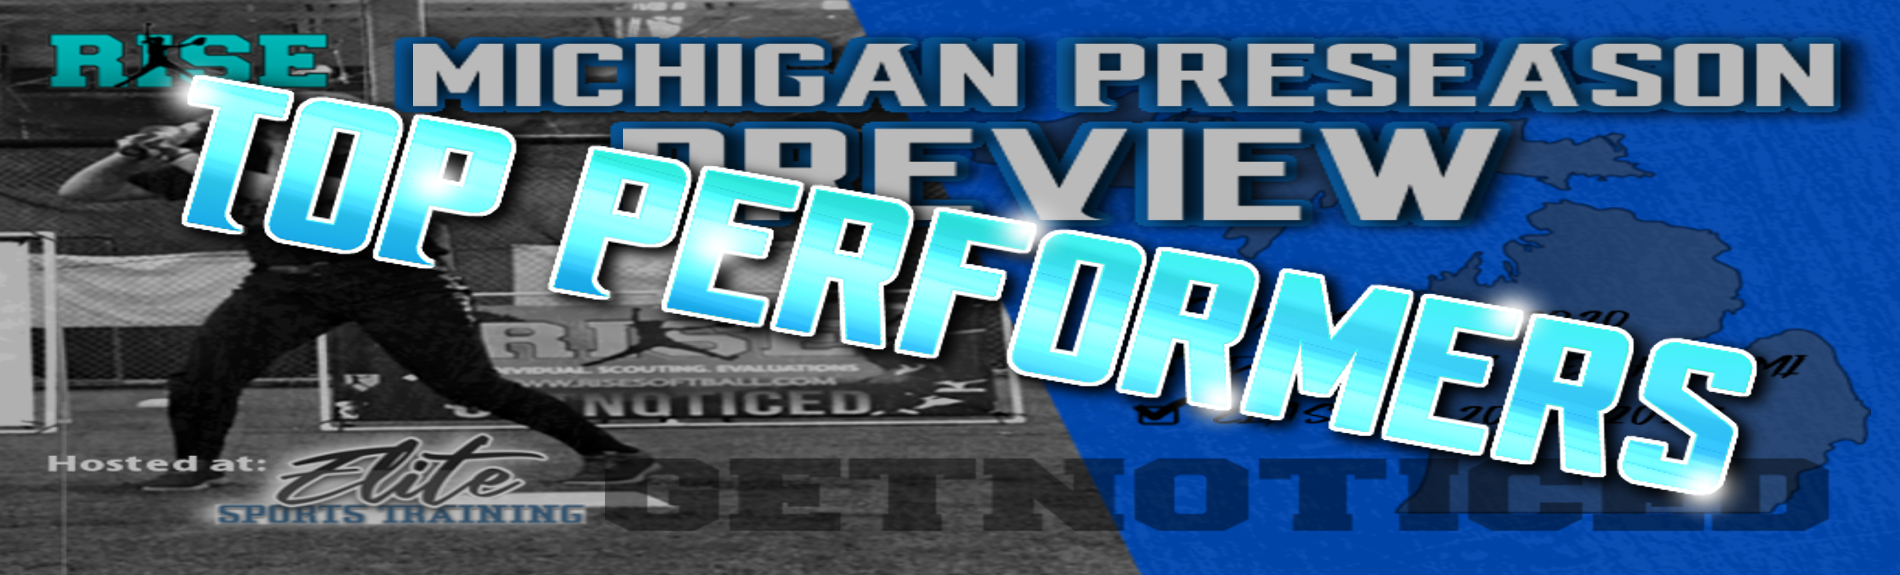 "Michigan Preseason Preview ""TOP PERFORMERS"""